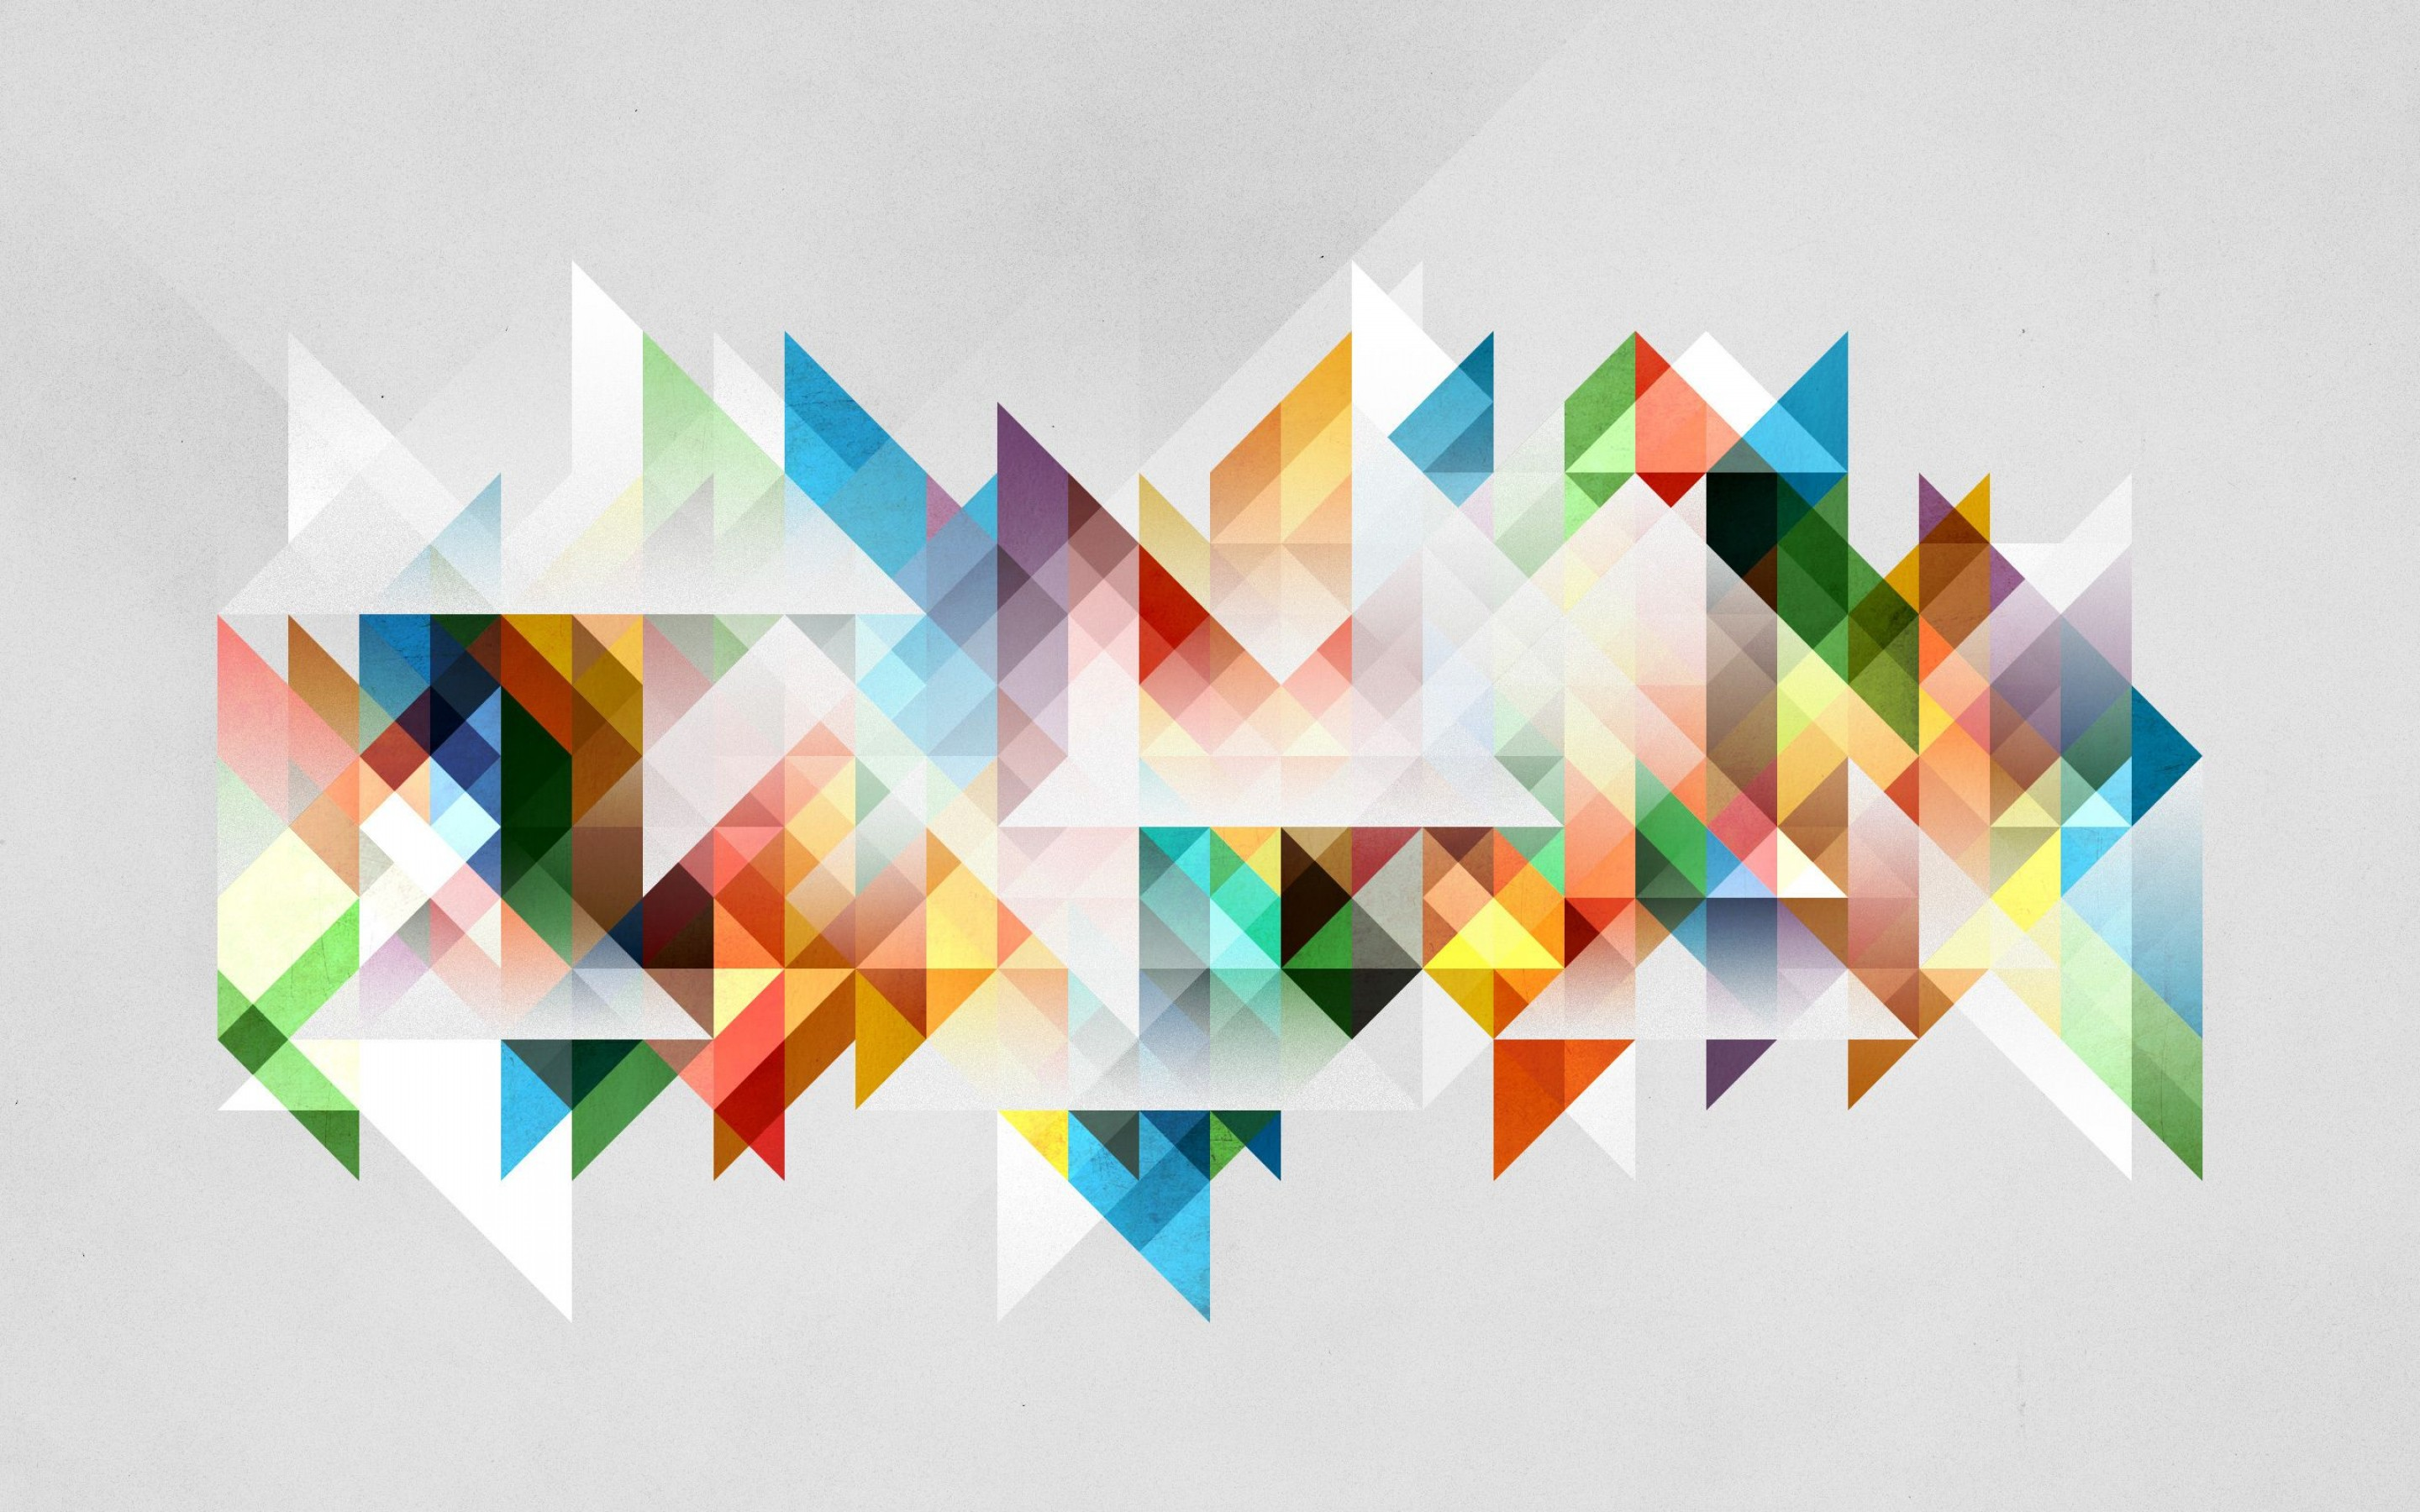 Love Shape Design Wallpaper : 20 HD Geometric Wallpapers